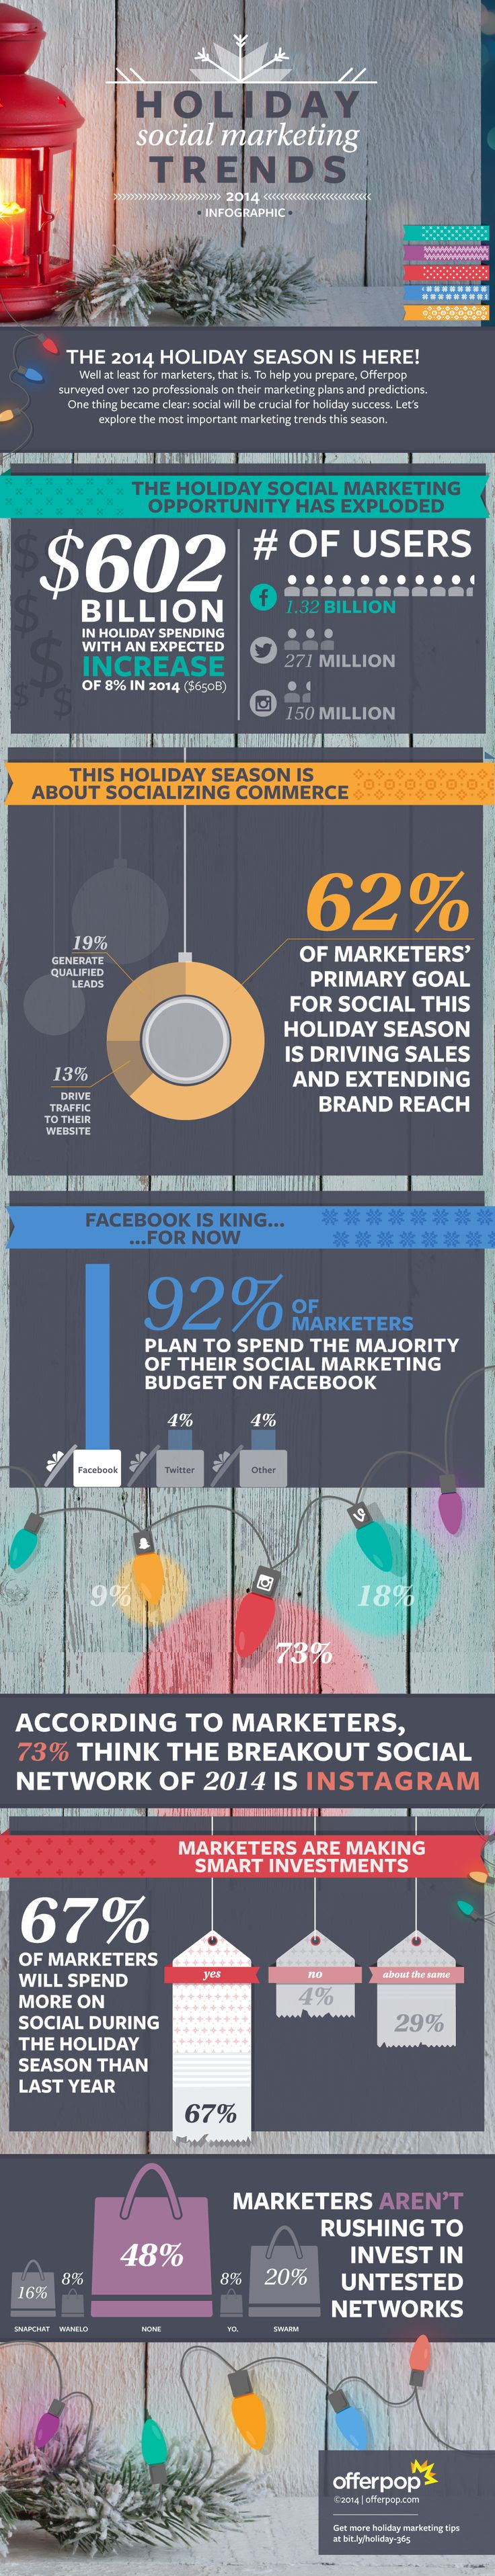 Holiday Social Marketing Trends